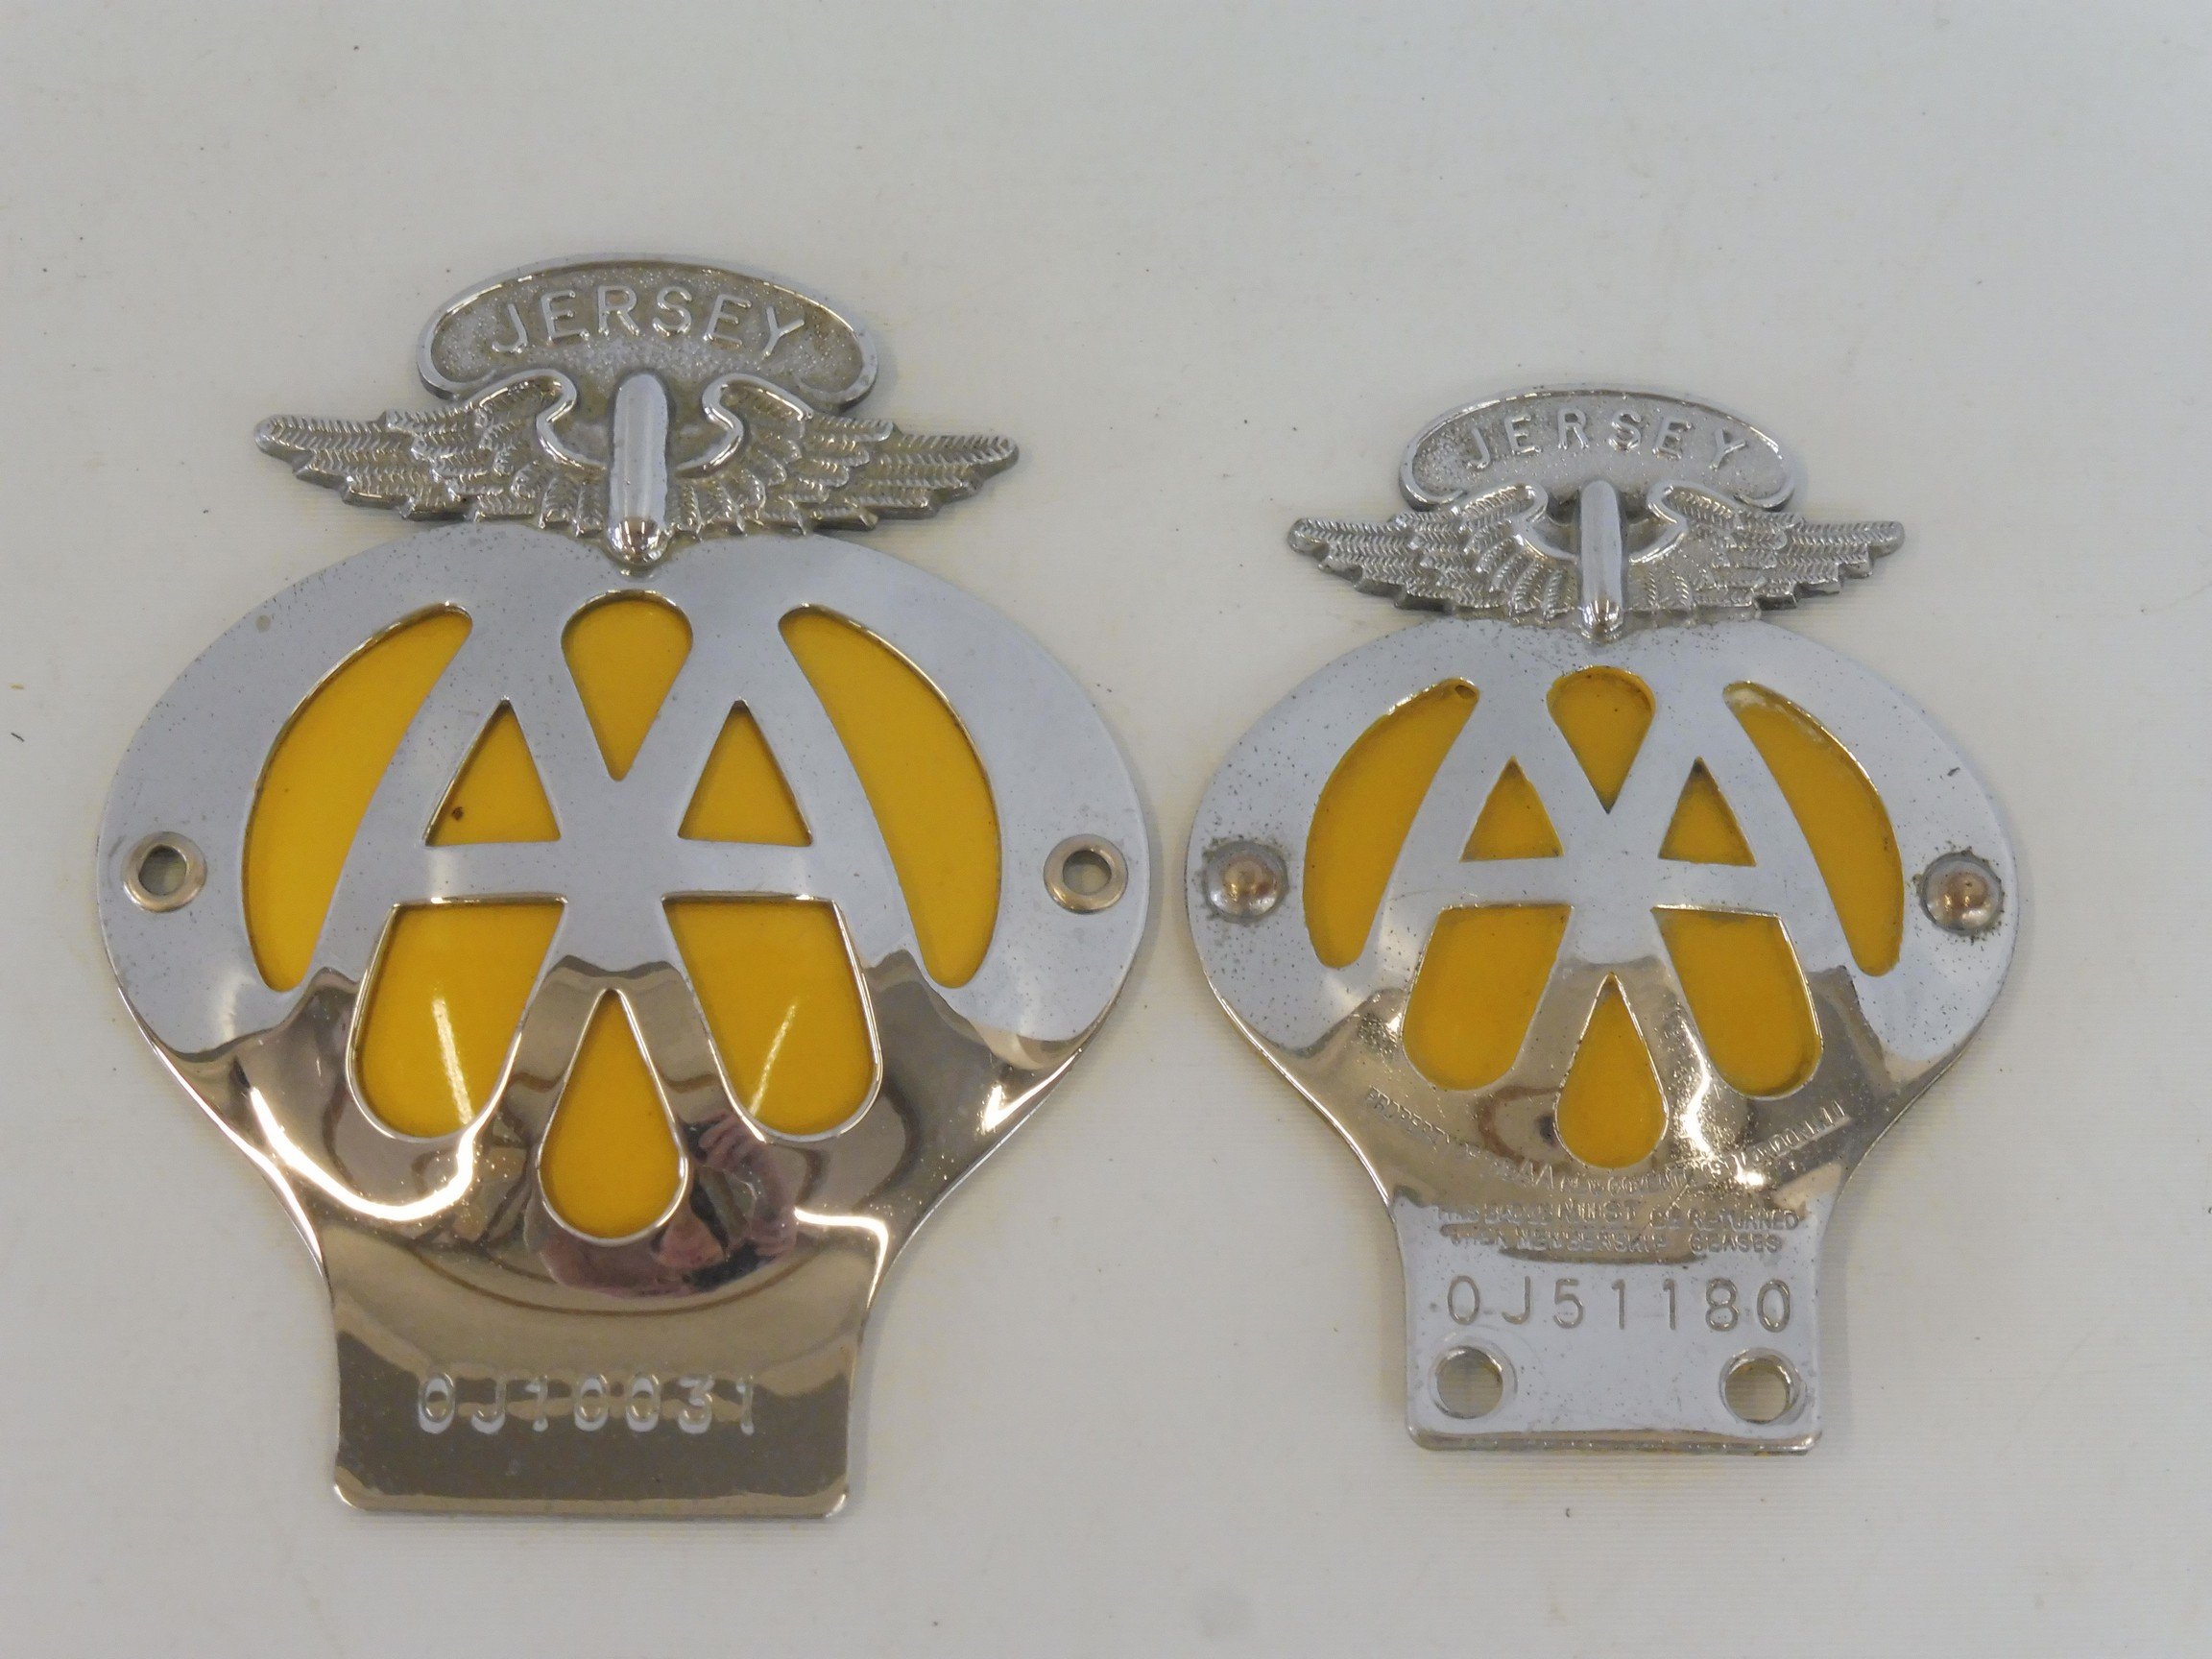 A large AA Jersey car badge, no OJ10031 and one smaller for motorcycles OJJ1180.